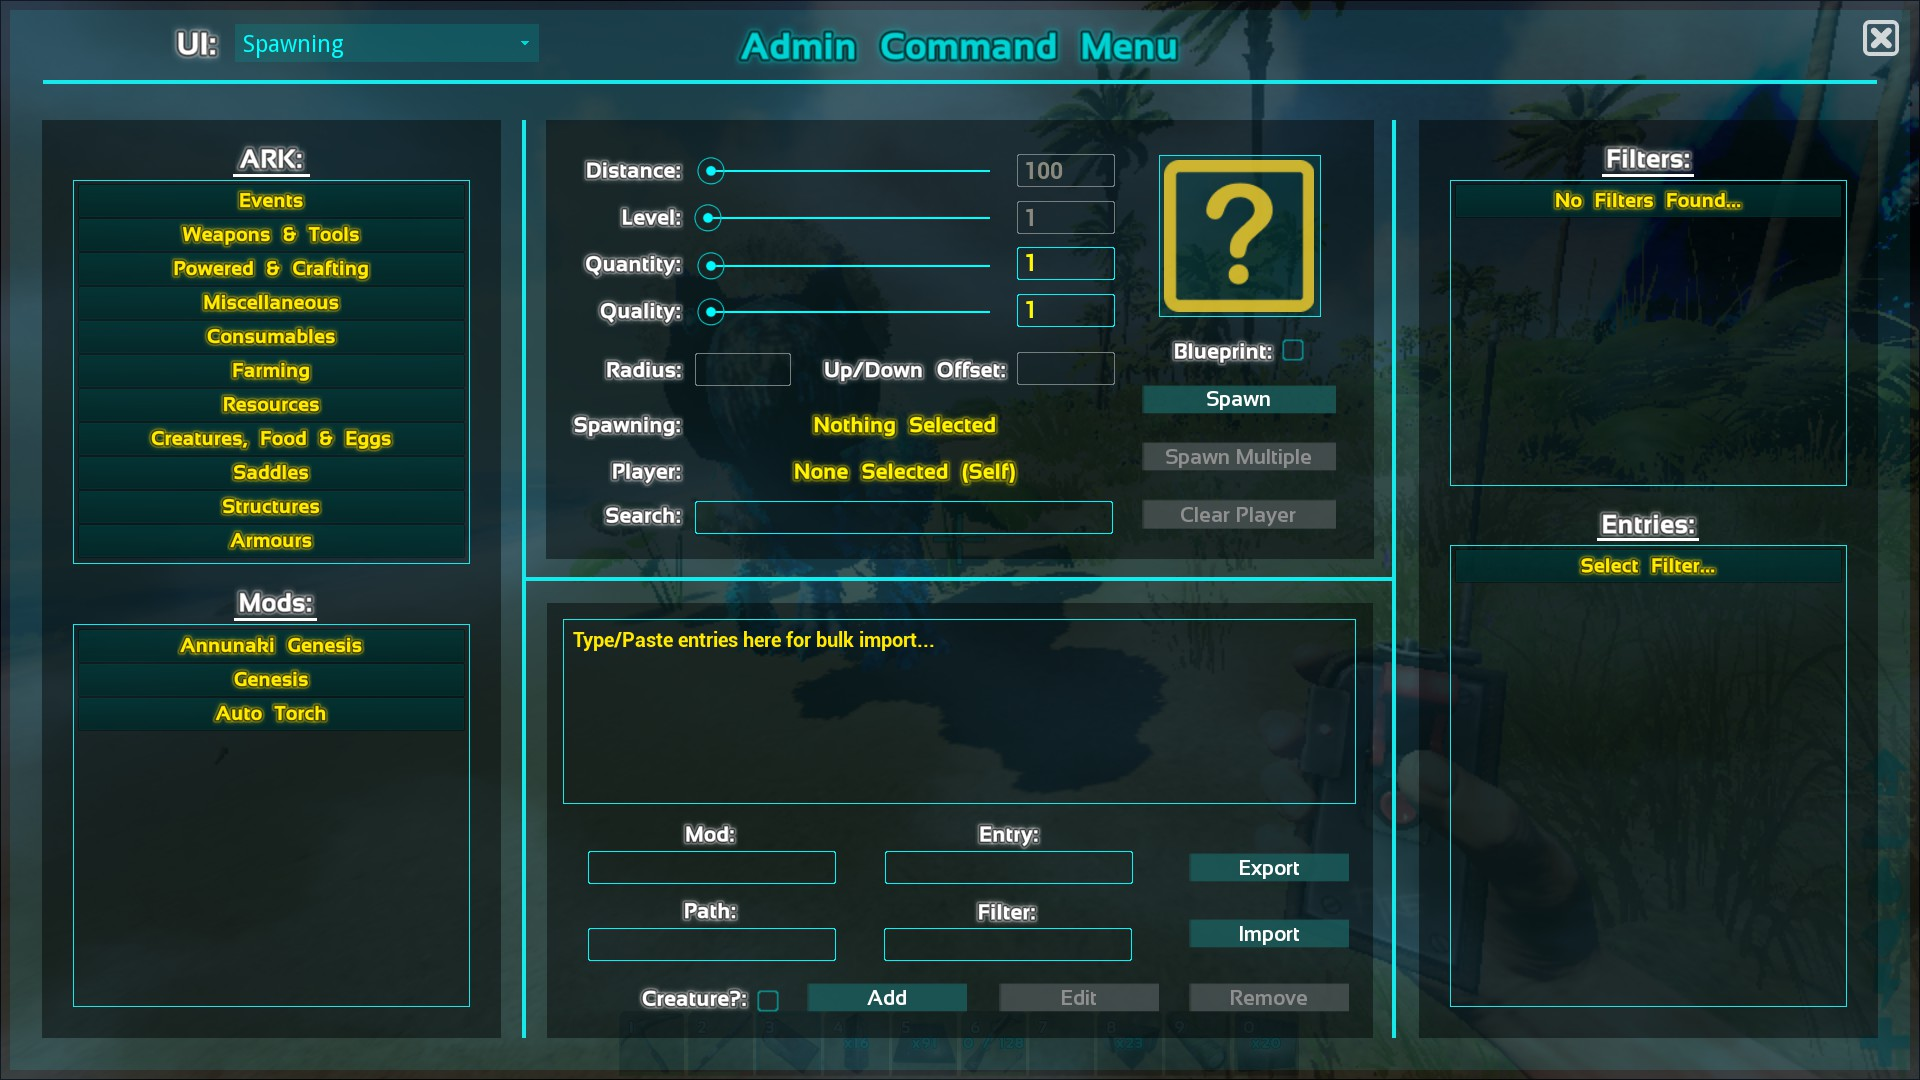 Steam community guide acm admin command menu mod bulk import guide httpsteamcommunitysharedfilesfiledetailsid692795631 malvernweather Images